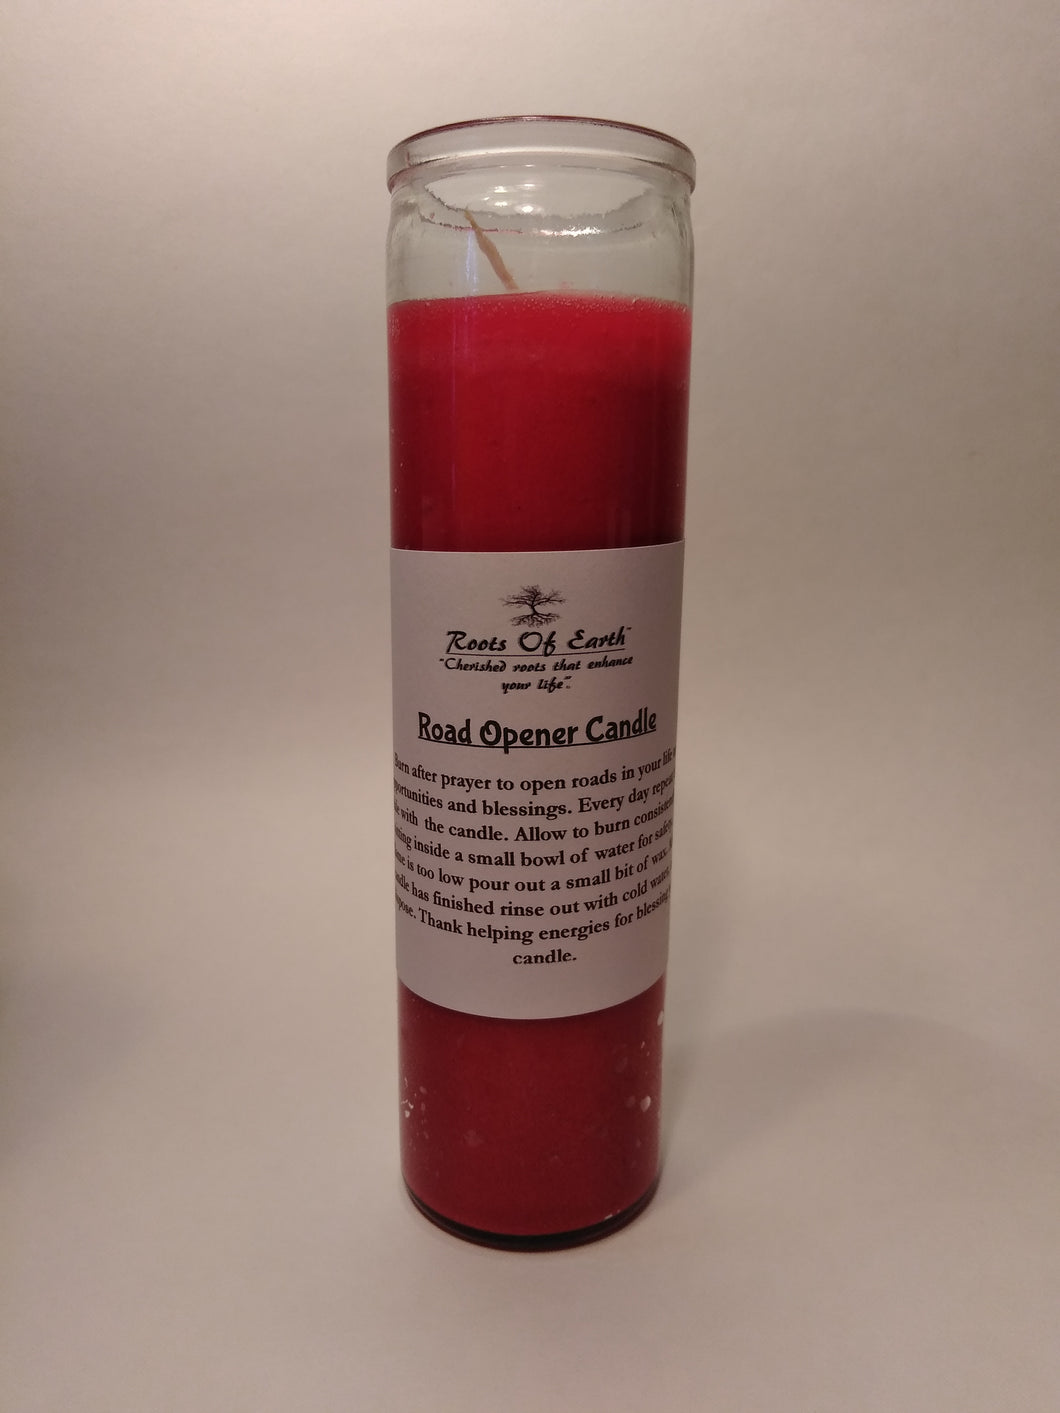 Road Opener 5-7 Day Conjure Rootwork Fixed Candle